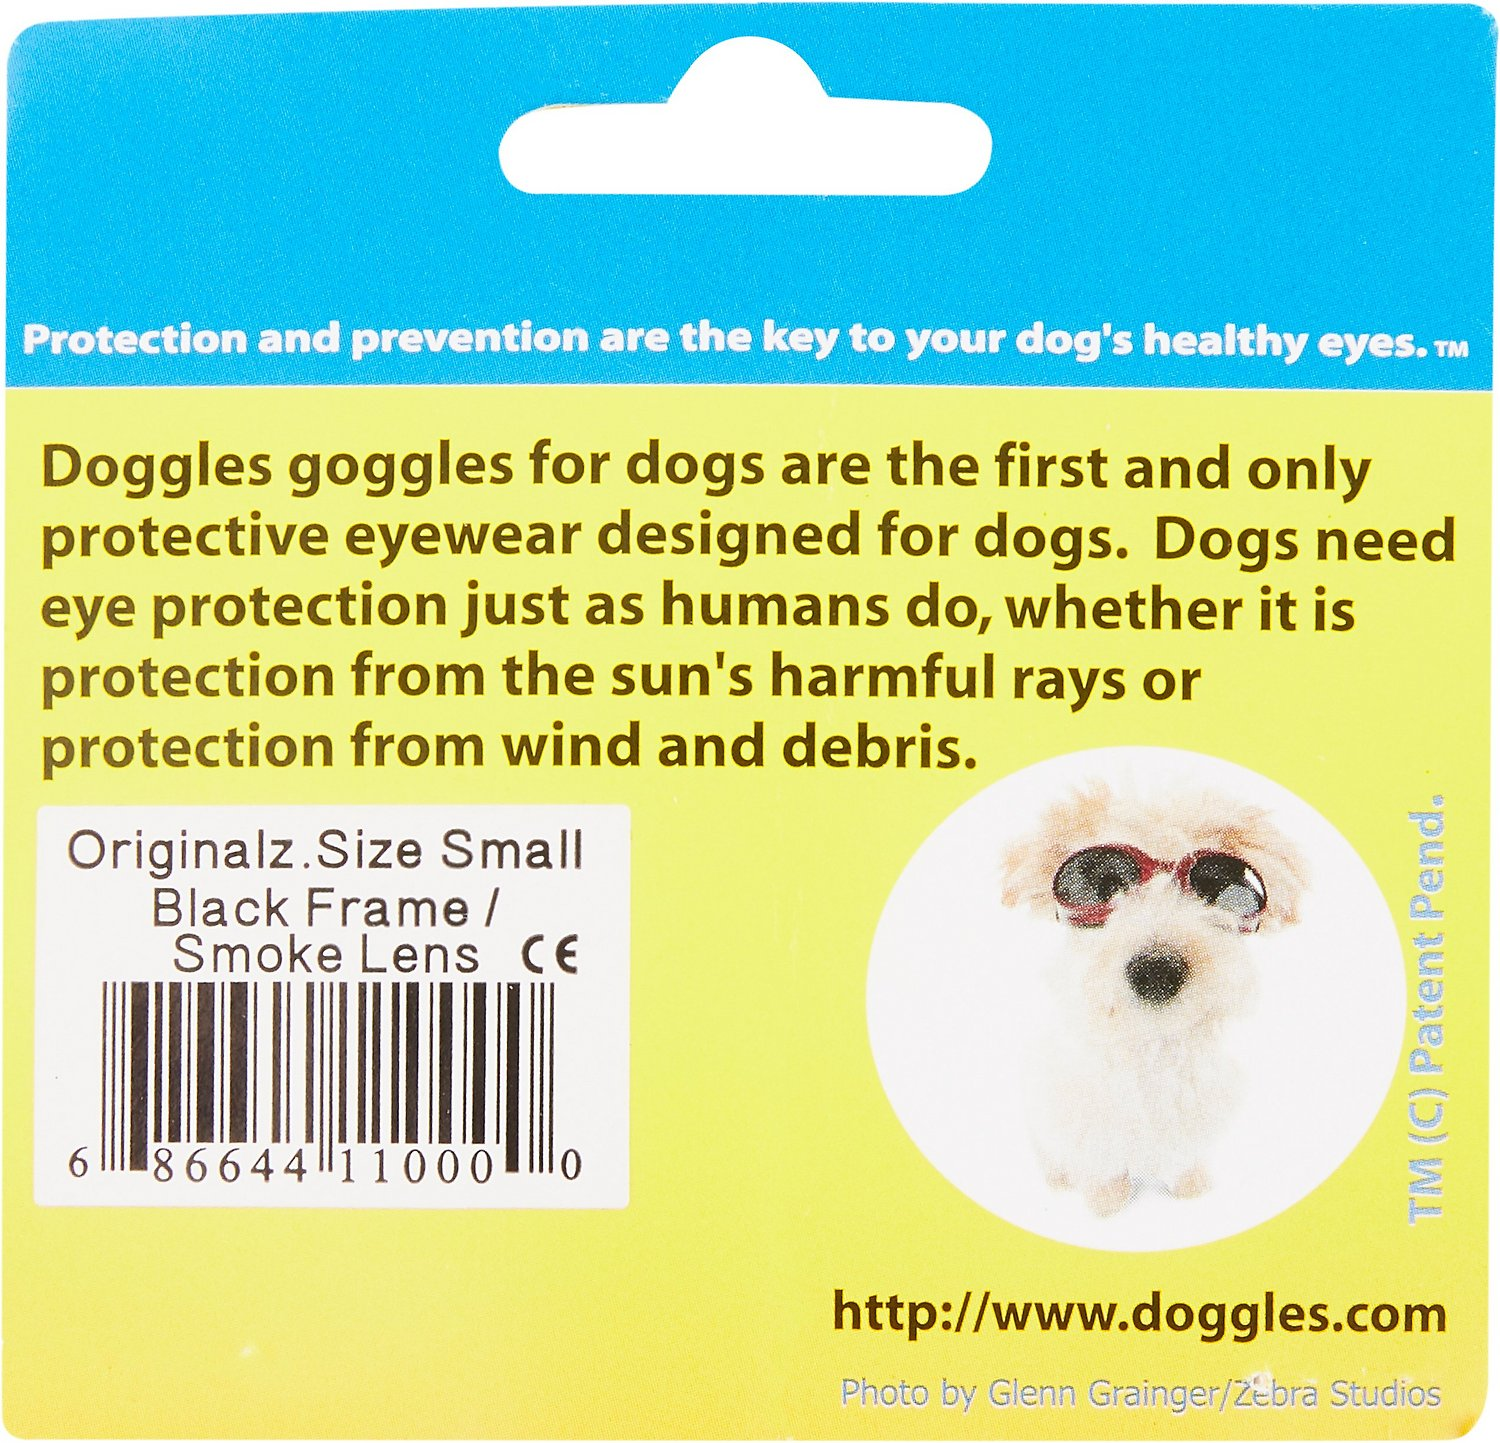 cb21a19c15 Dog · Clothing   Accessories · Outdoor Gear · Safety Gear. Roll over image  to zoom in. PrevNext